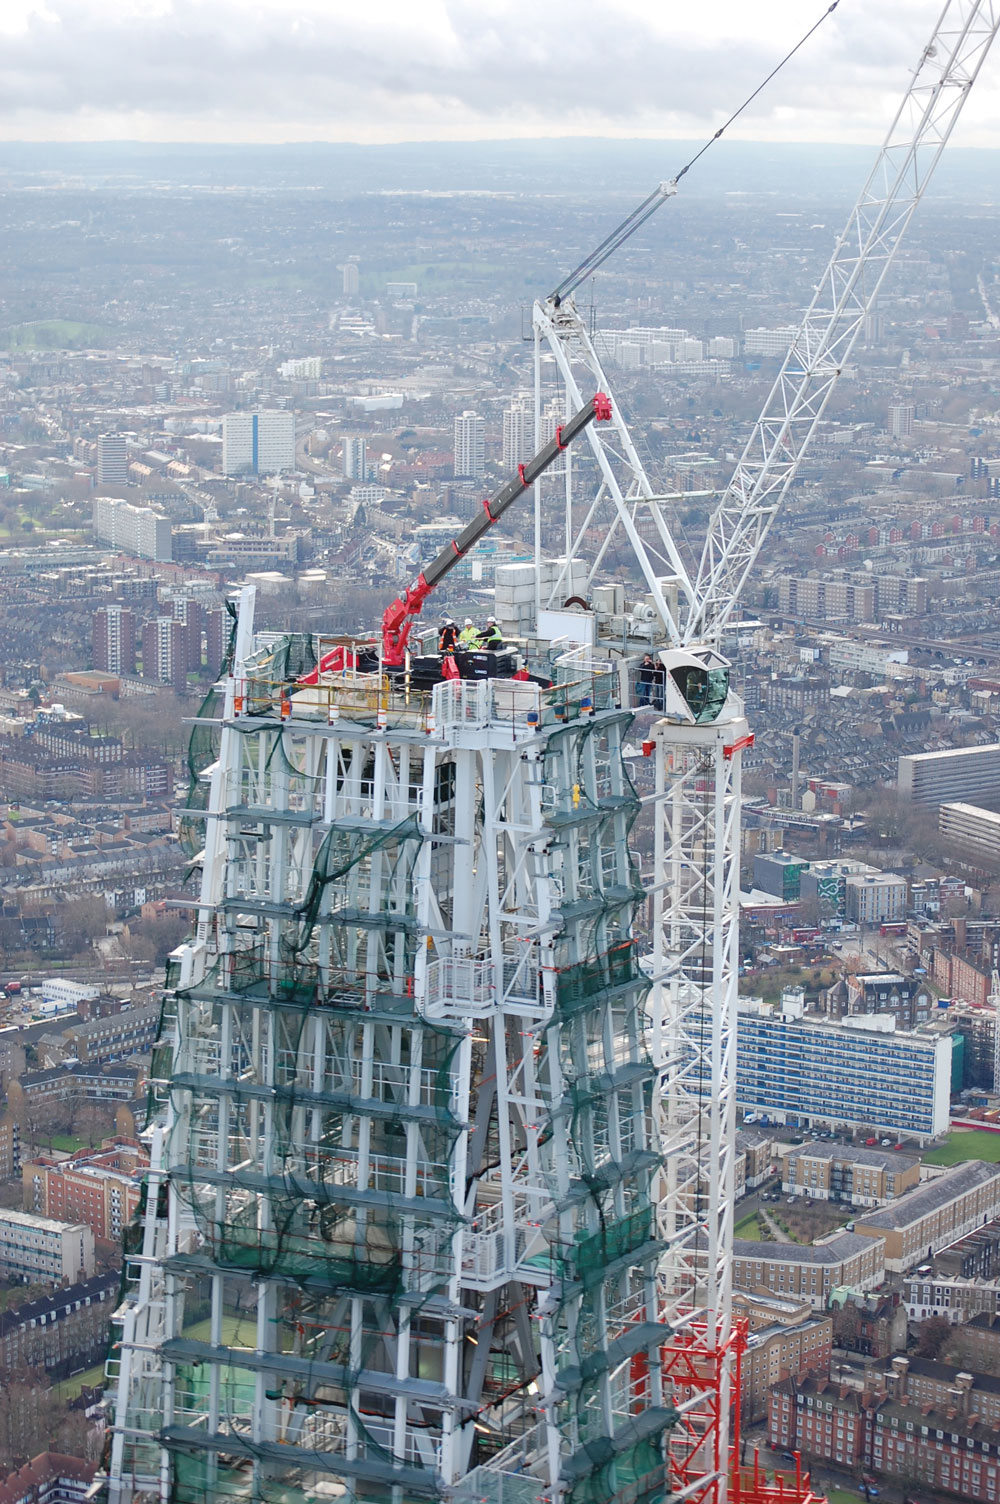 Unic Mini Crane At The Shard Features In Mail On Sunday